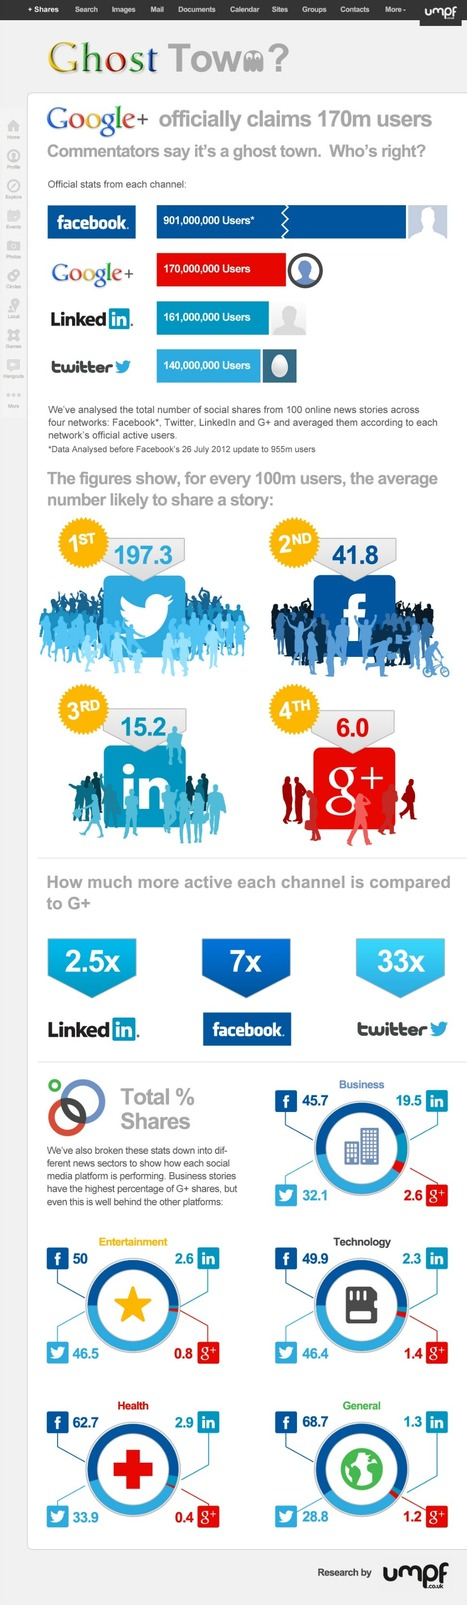 Google+ Plus: Social Media Website Turning into Ghost Town Marketing [Infographic] | Google + Project | Scoop.it